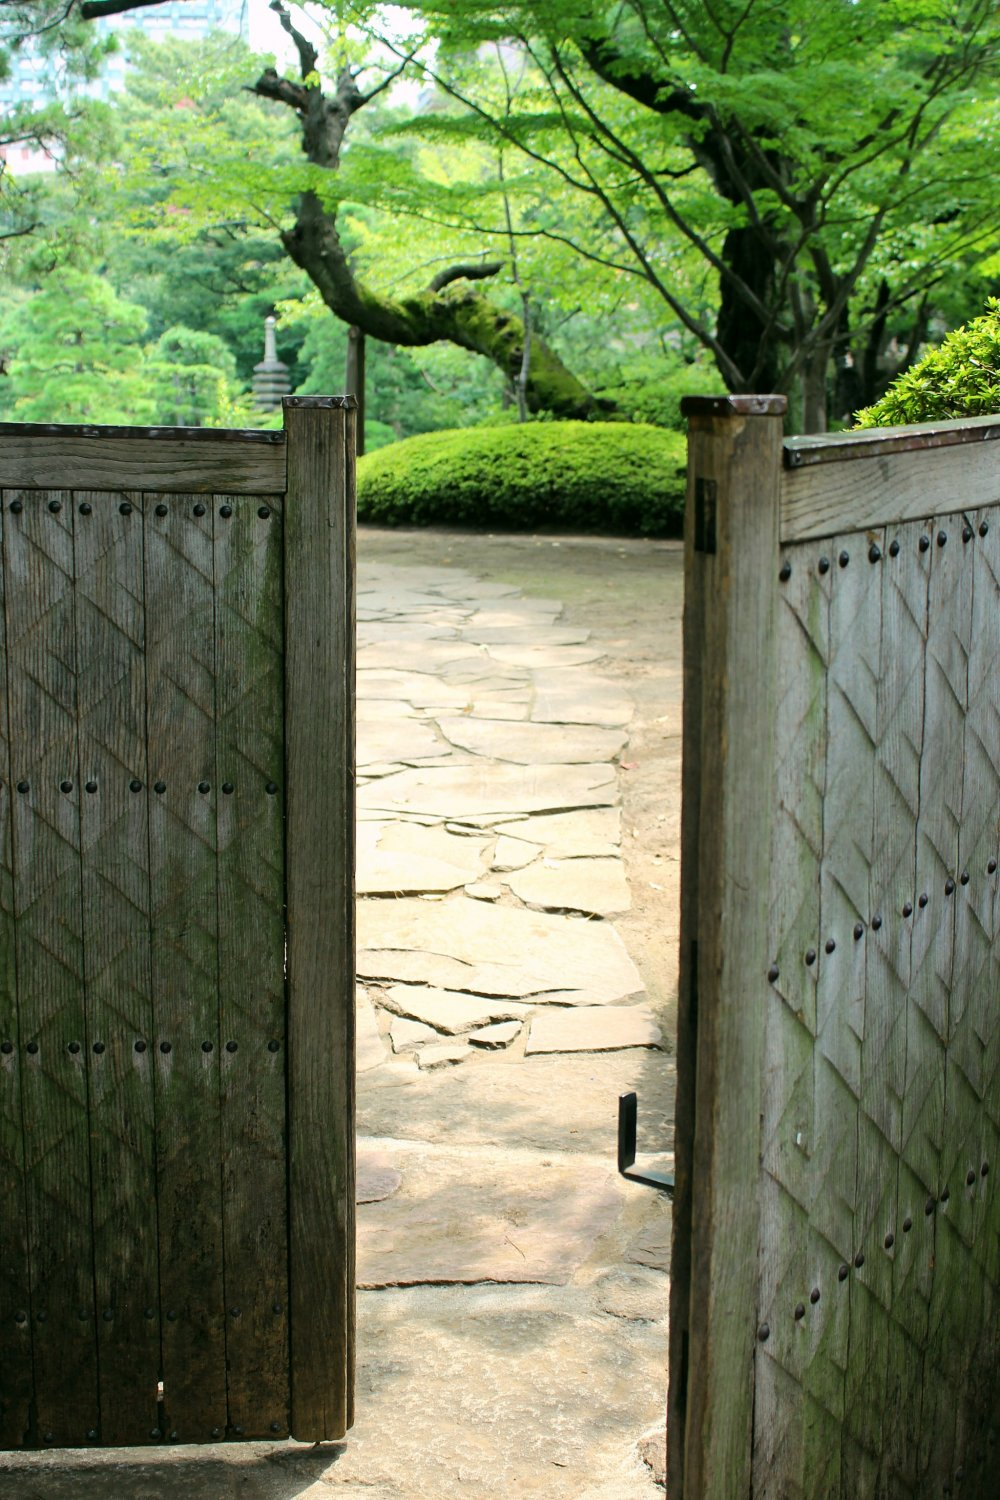 Charming little gate at the entrance